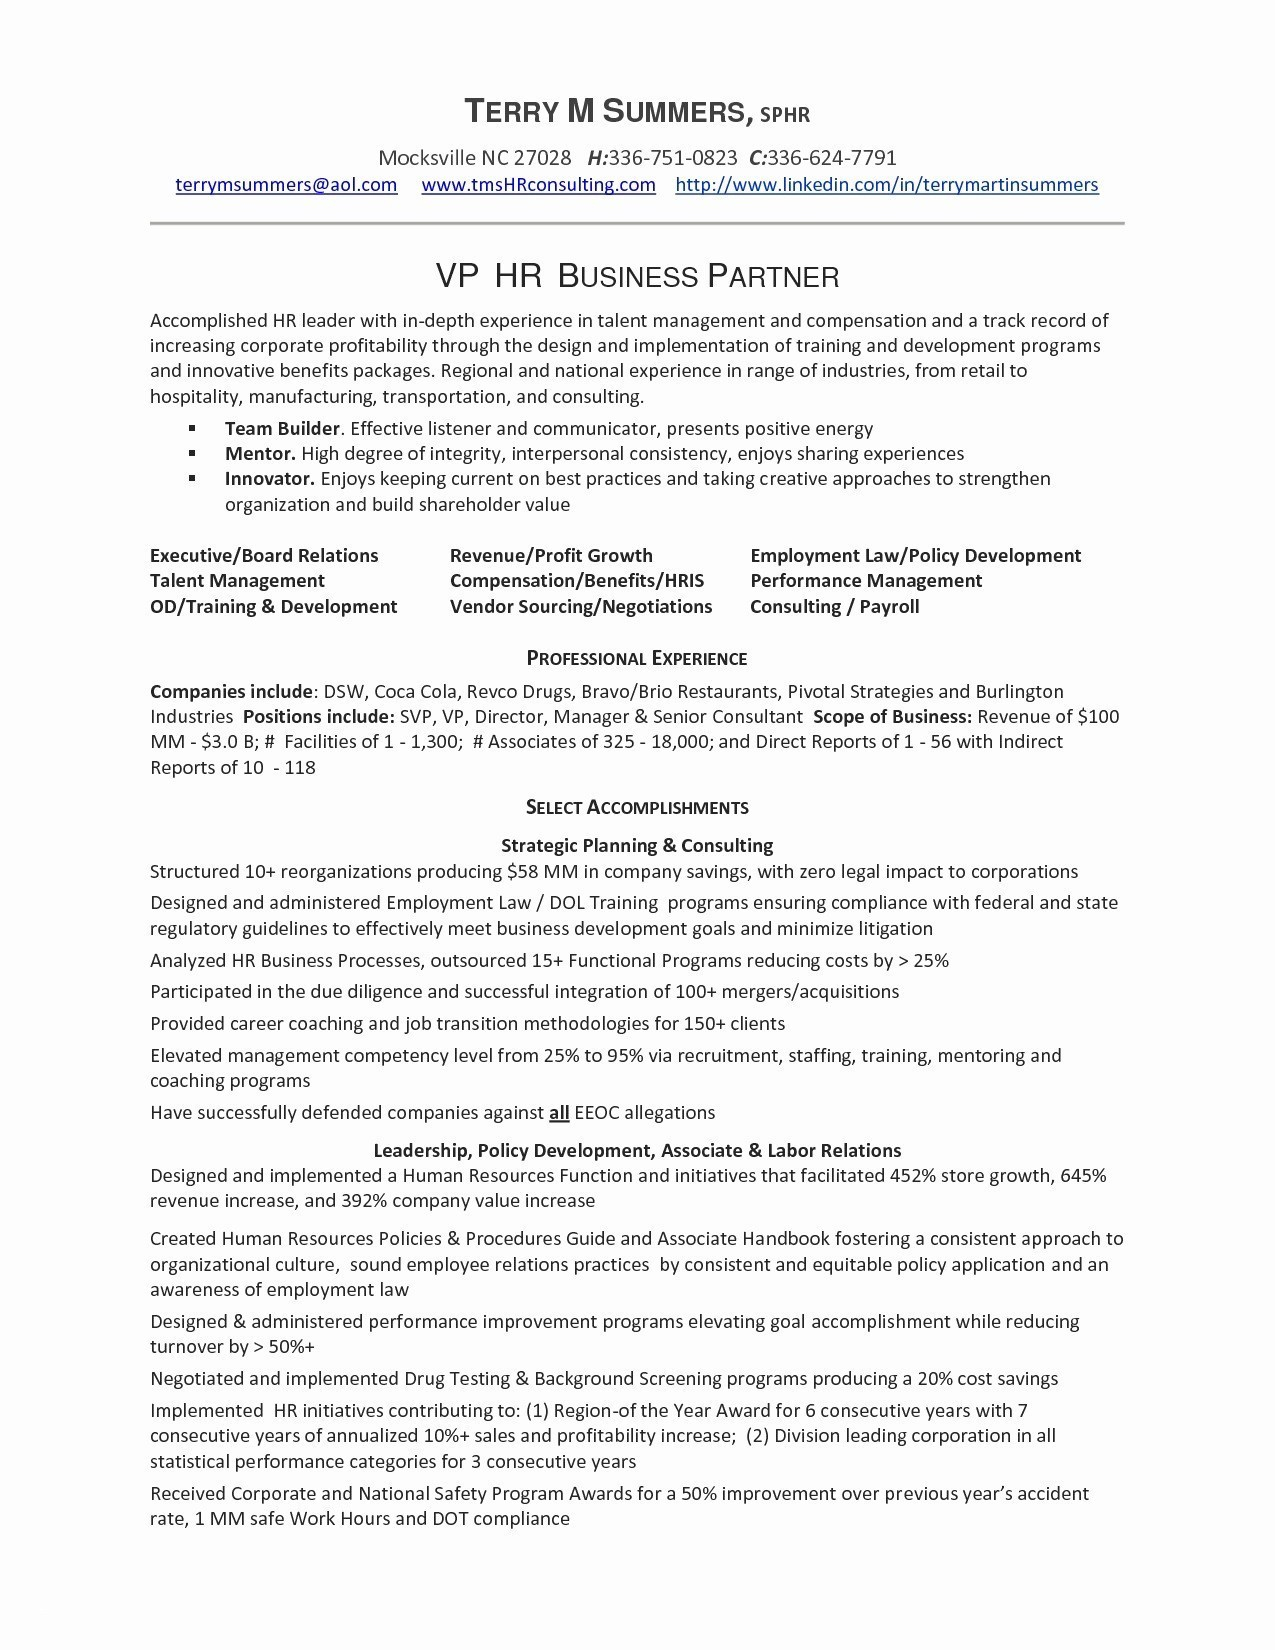 Military Resume Template Microsoft Word - Military Resume Examples for Civilian Fresh Army to Civilian Resume